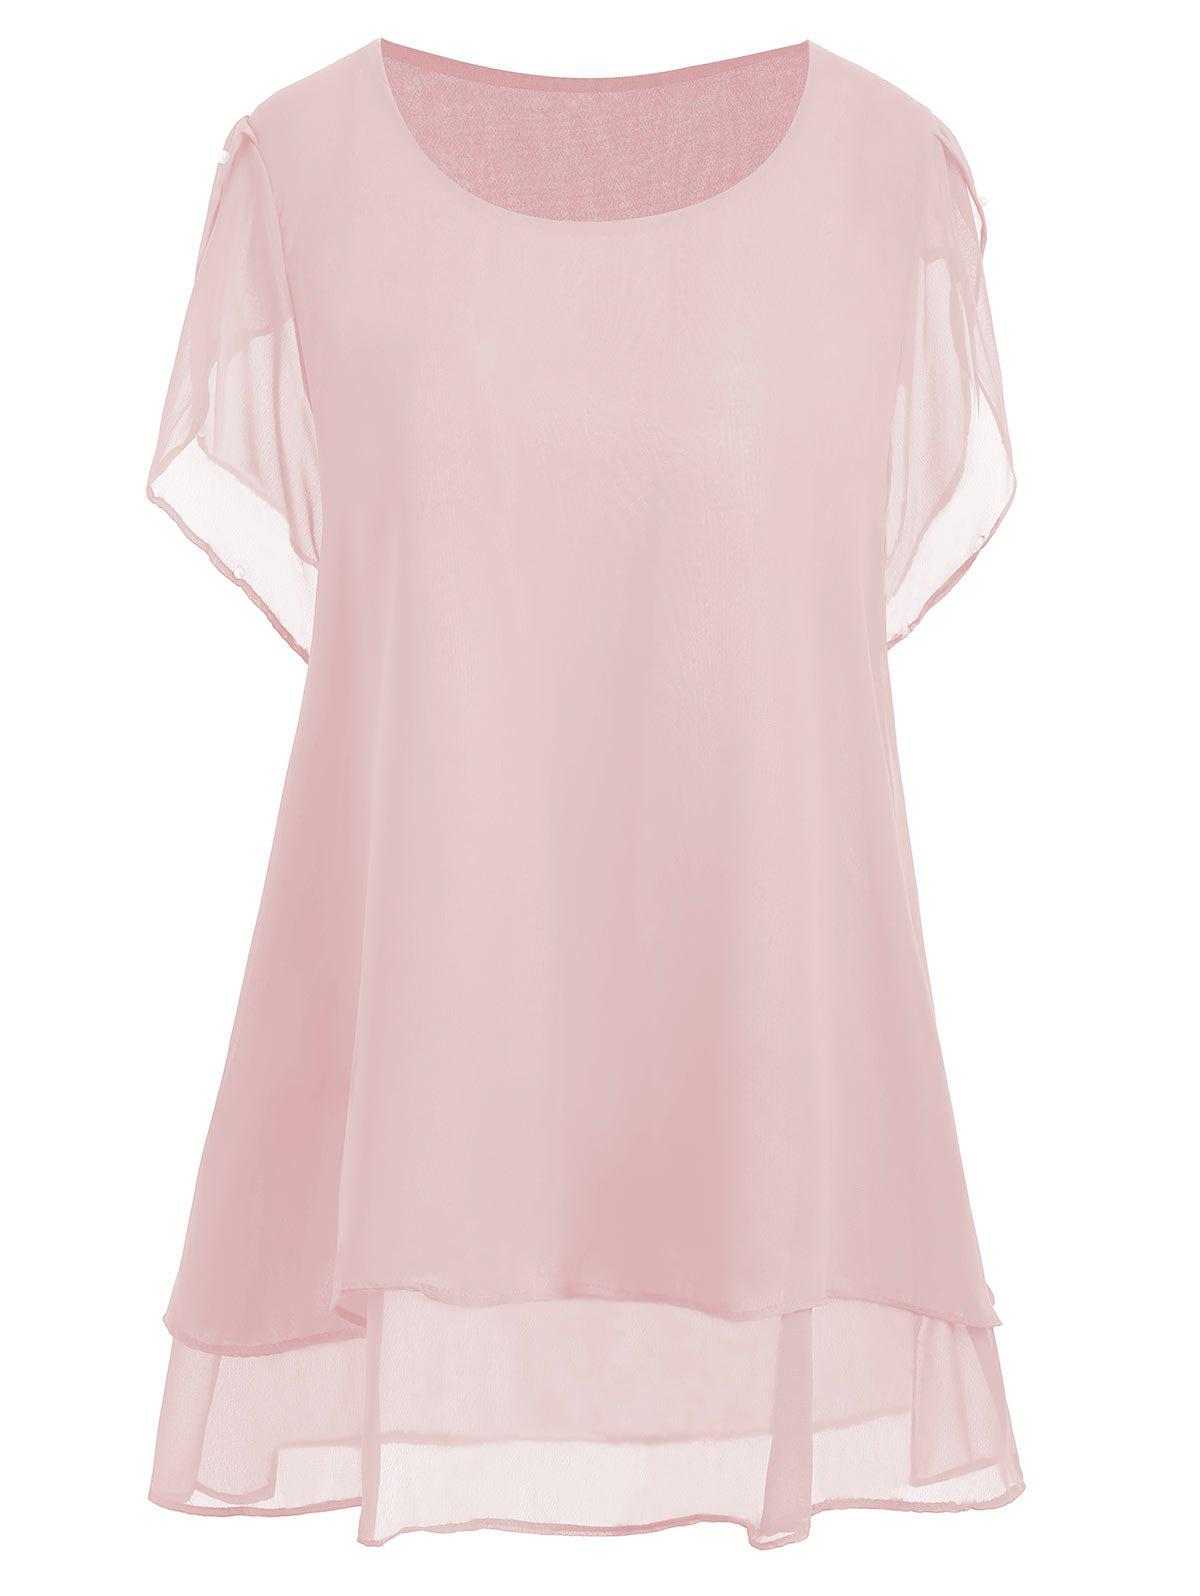 Plus Size Beaded Chiffon Tunic TopWOMEN<br><br>Size: 3XL; Color: PINK; Material: Polyester; Shirt Length: Long; Sleeve Length: Short; Collar: Round Neck; Style: Casual; Season: Summer; Pattern Type: Solid; Weight: 0.2000kg; Package Contents: 1 x Top;